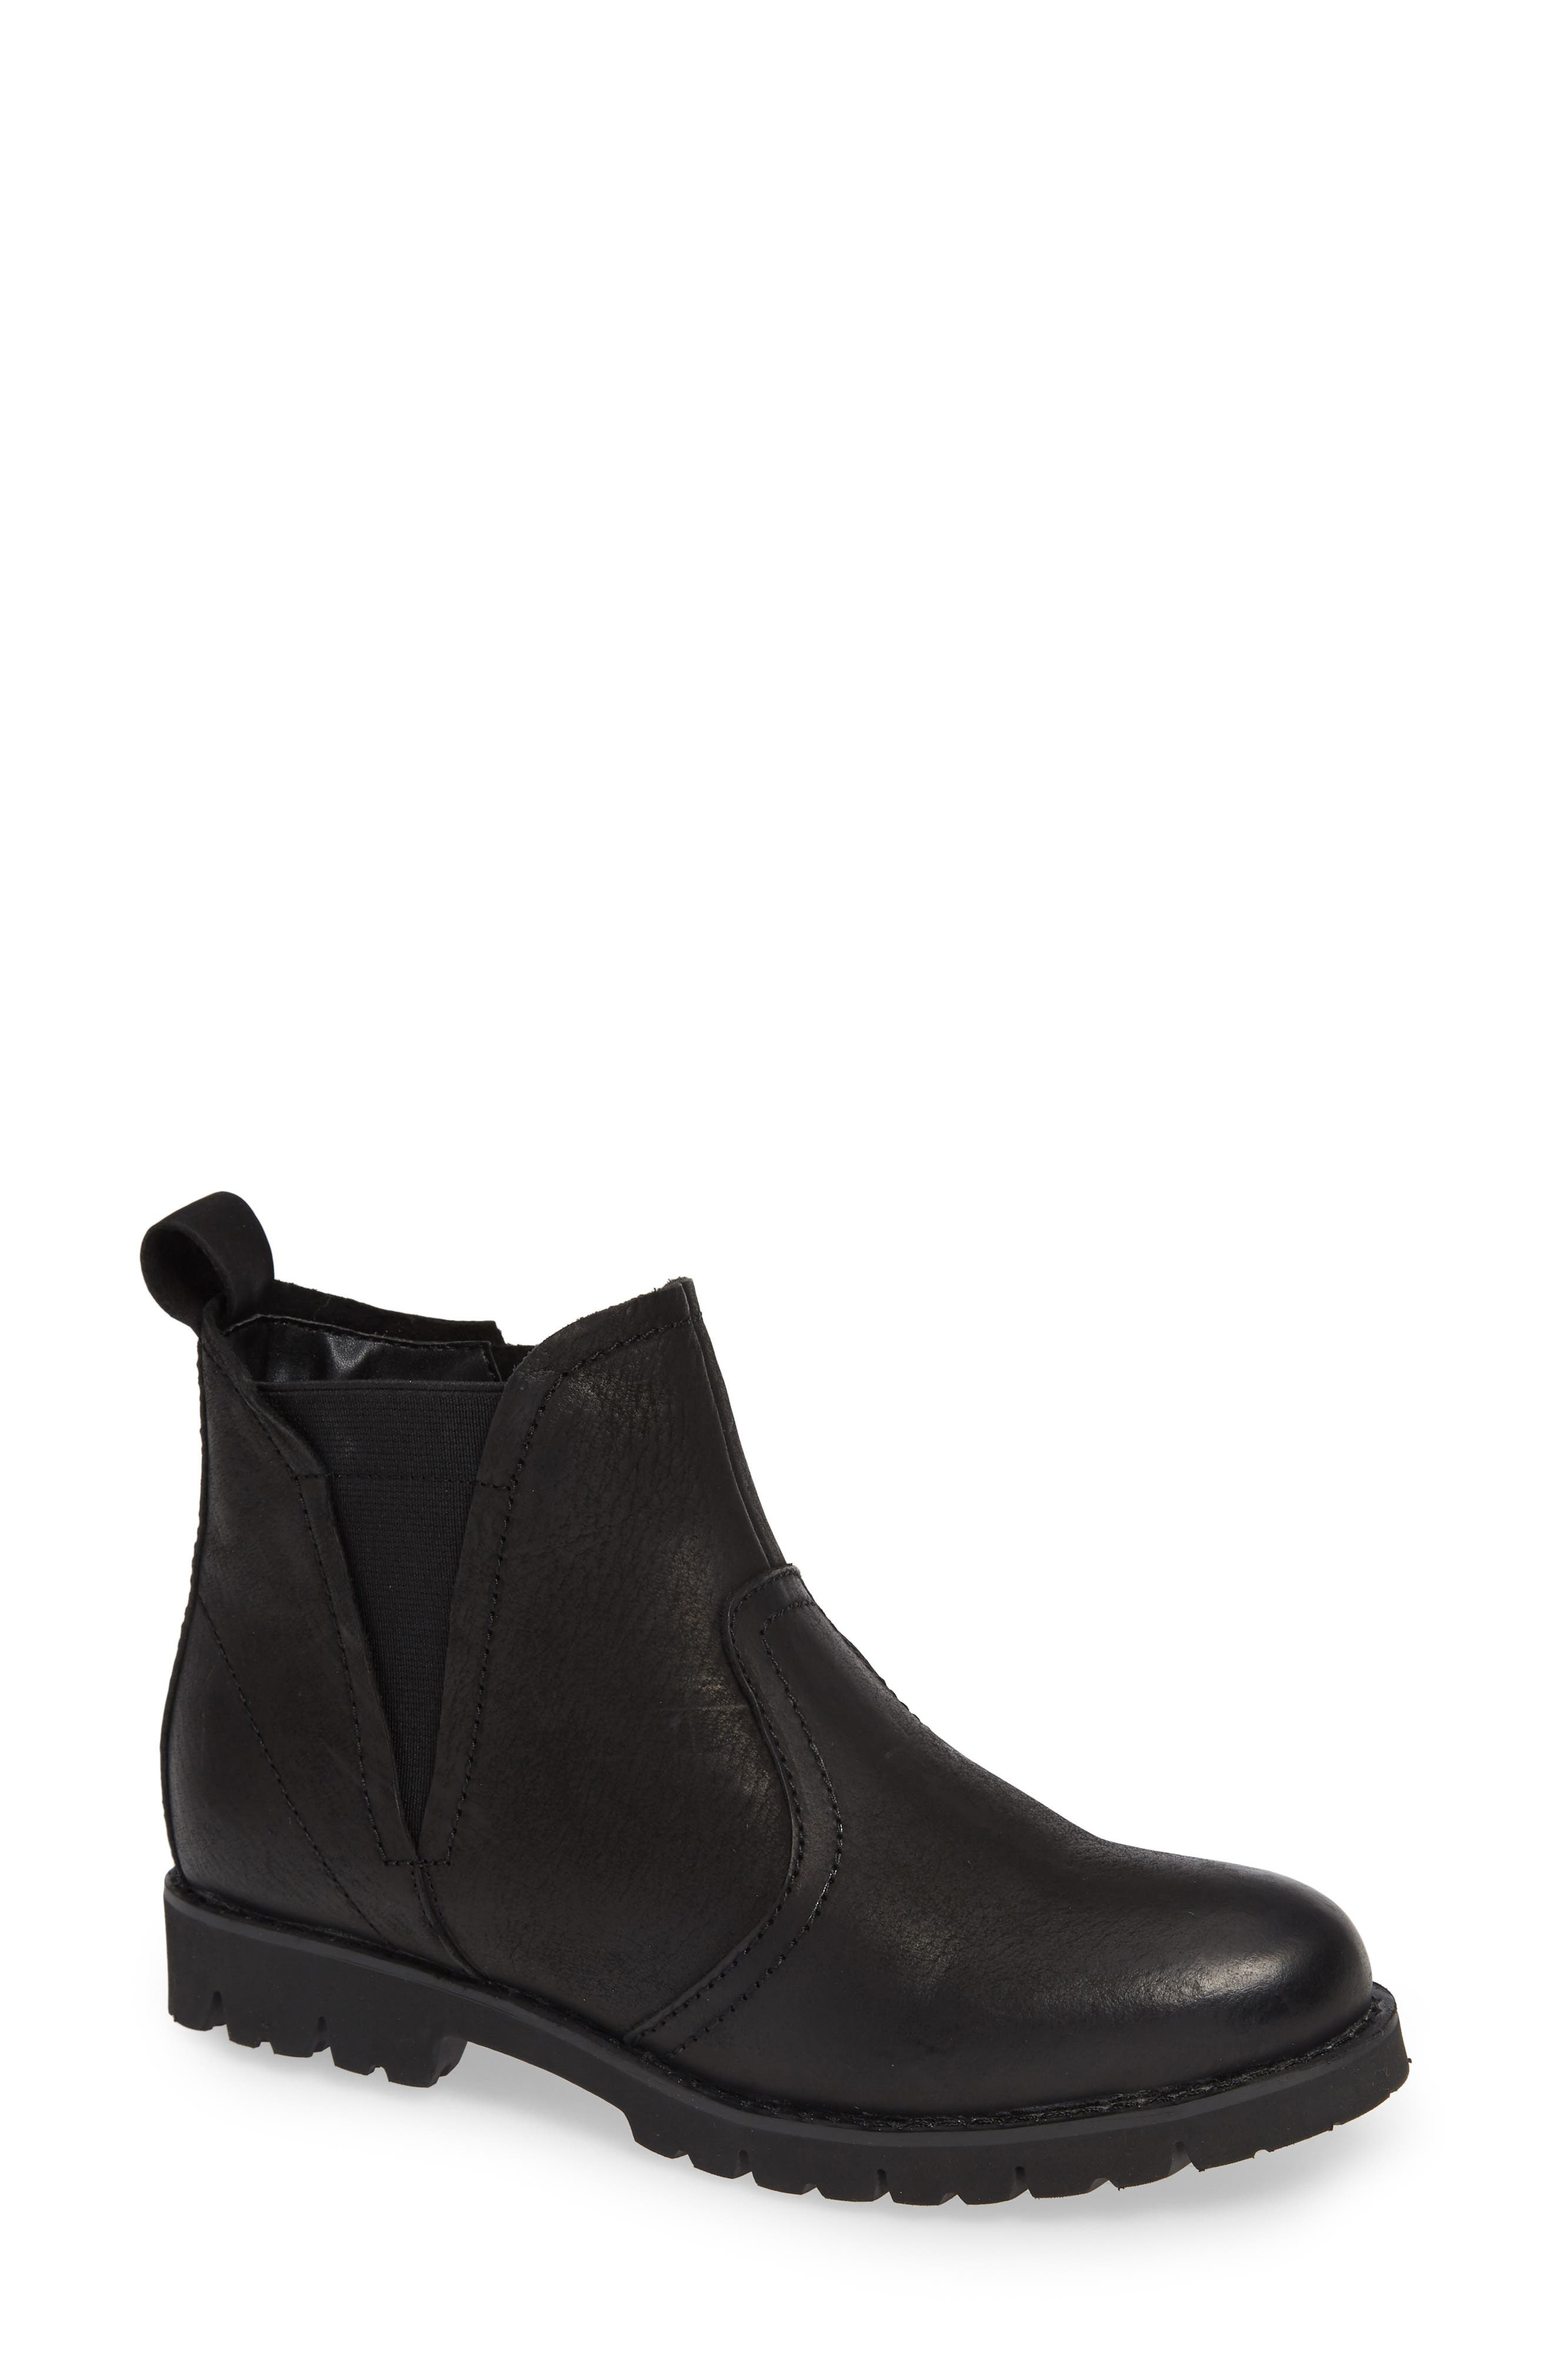 David Tate Reserve Lugged Bootie, Black